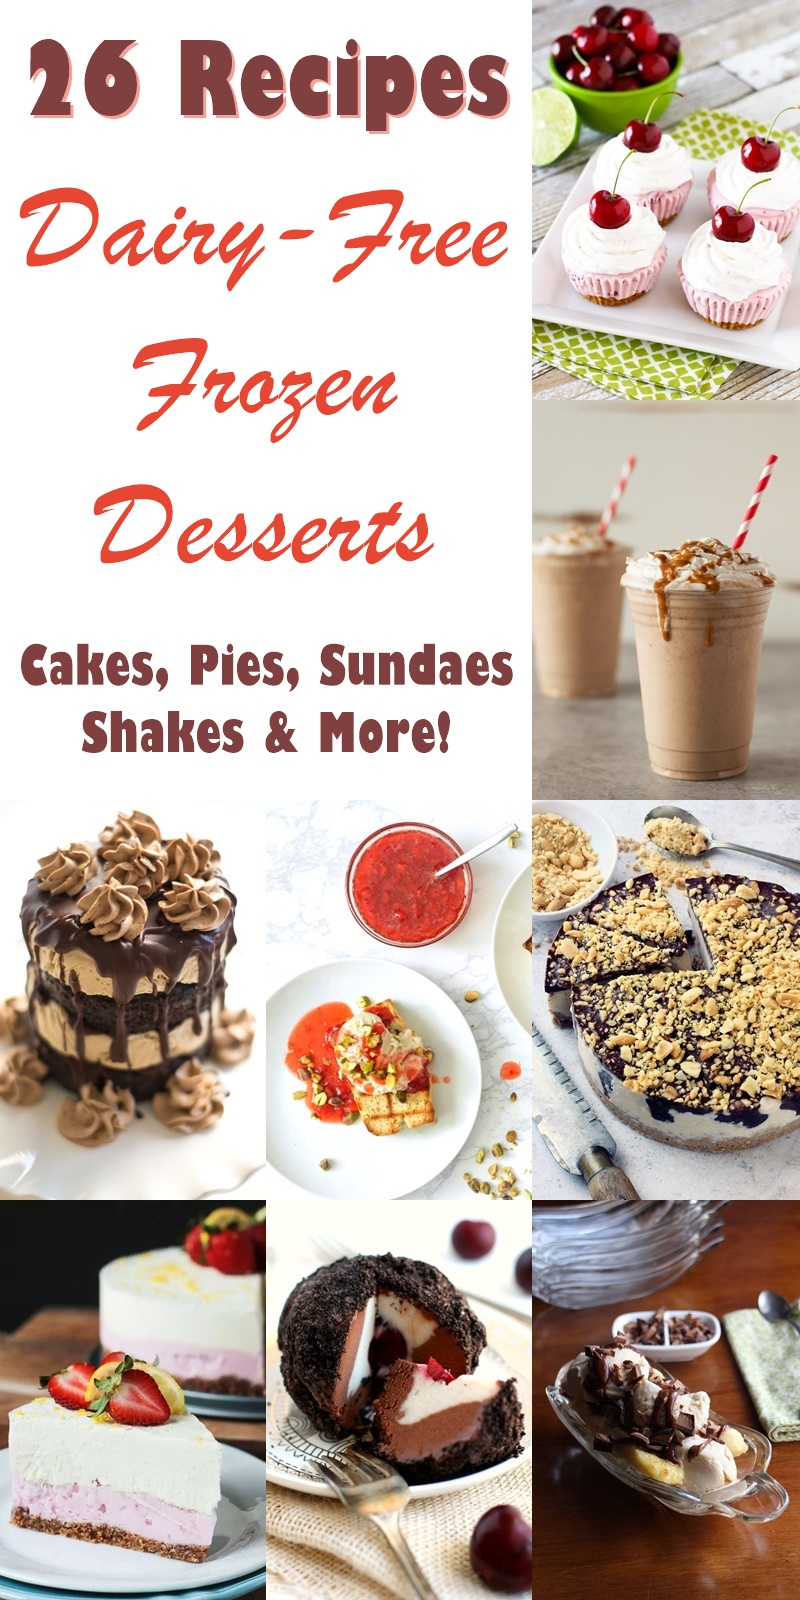 26 Dairy Free Frozen Dessert Recipes! Cakes, Pies, Sundaes, Shakes & More - all vegan + most gluten-free and soy-free